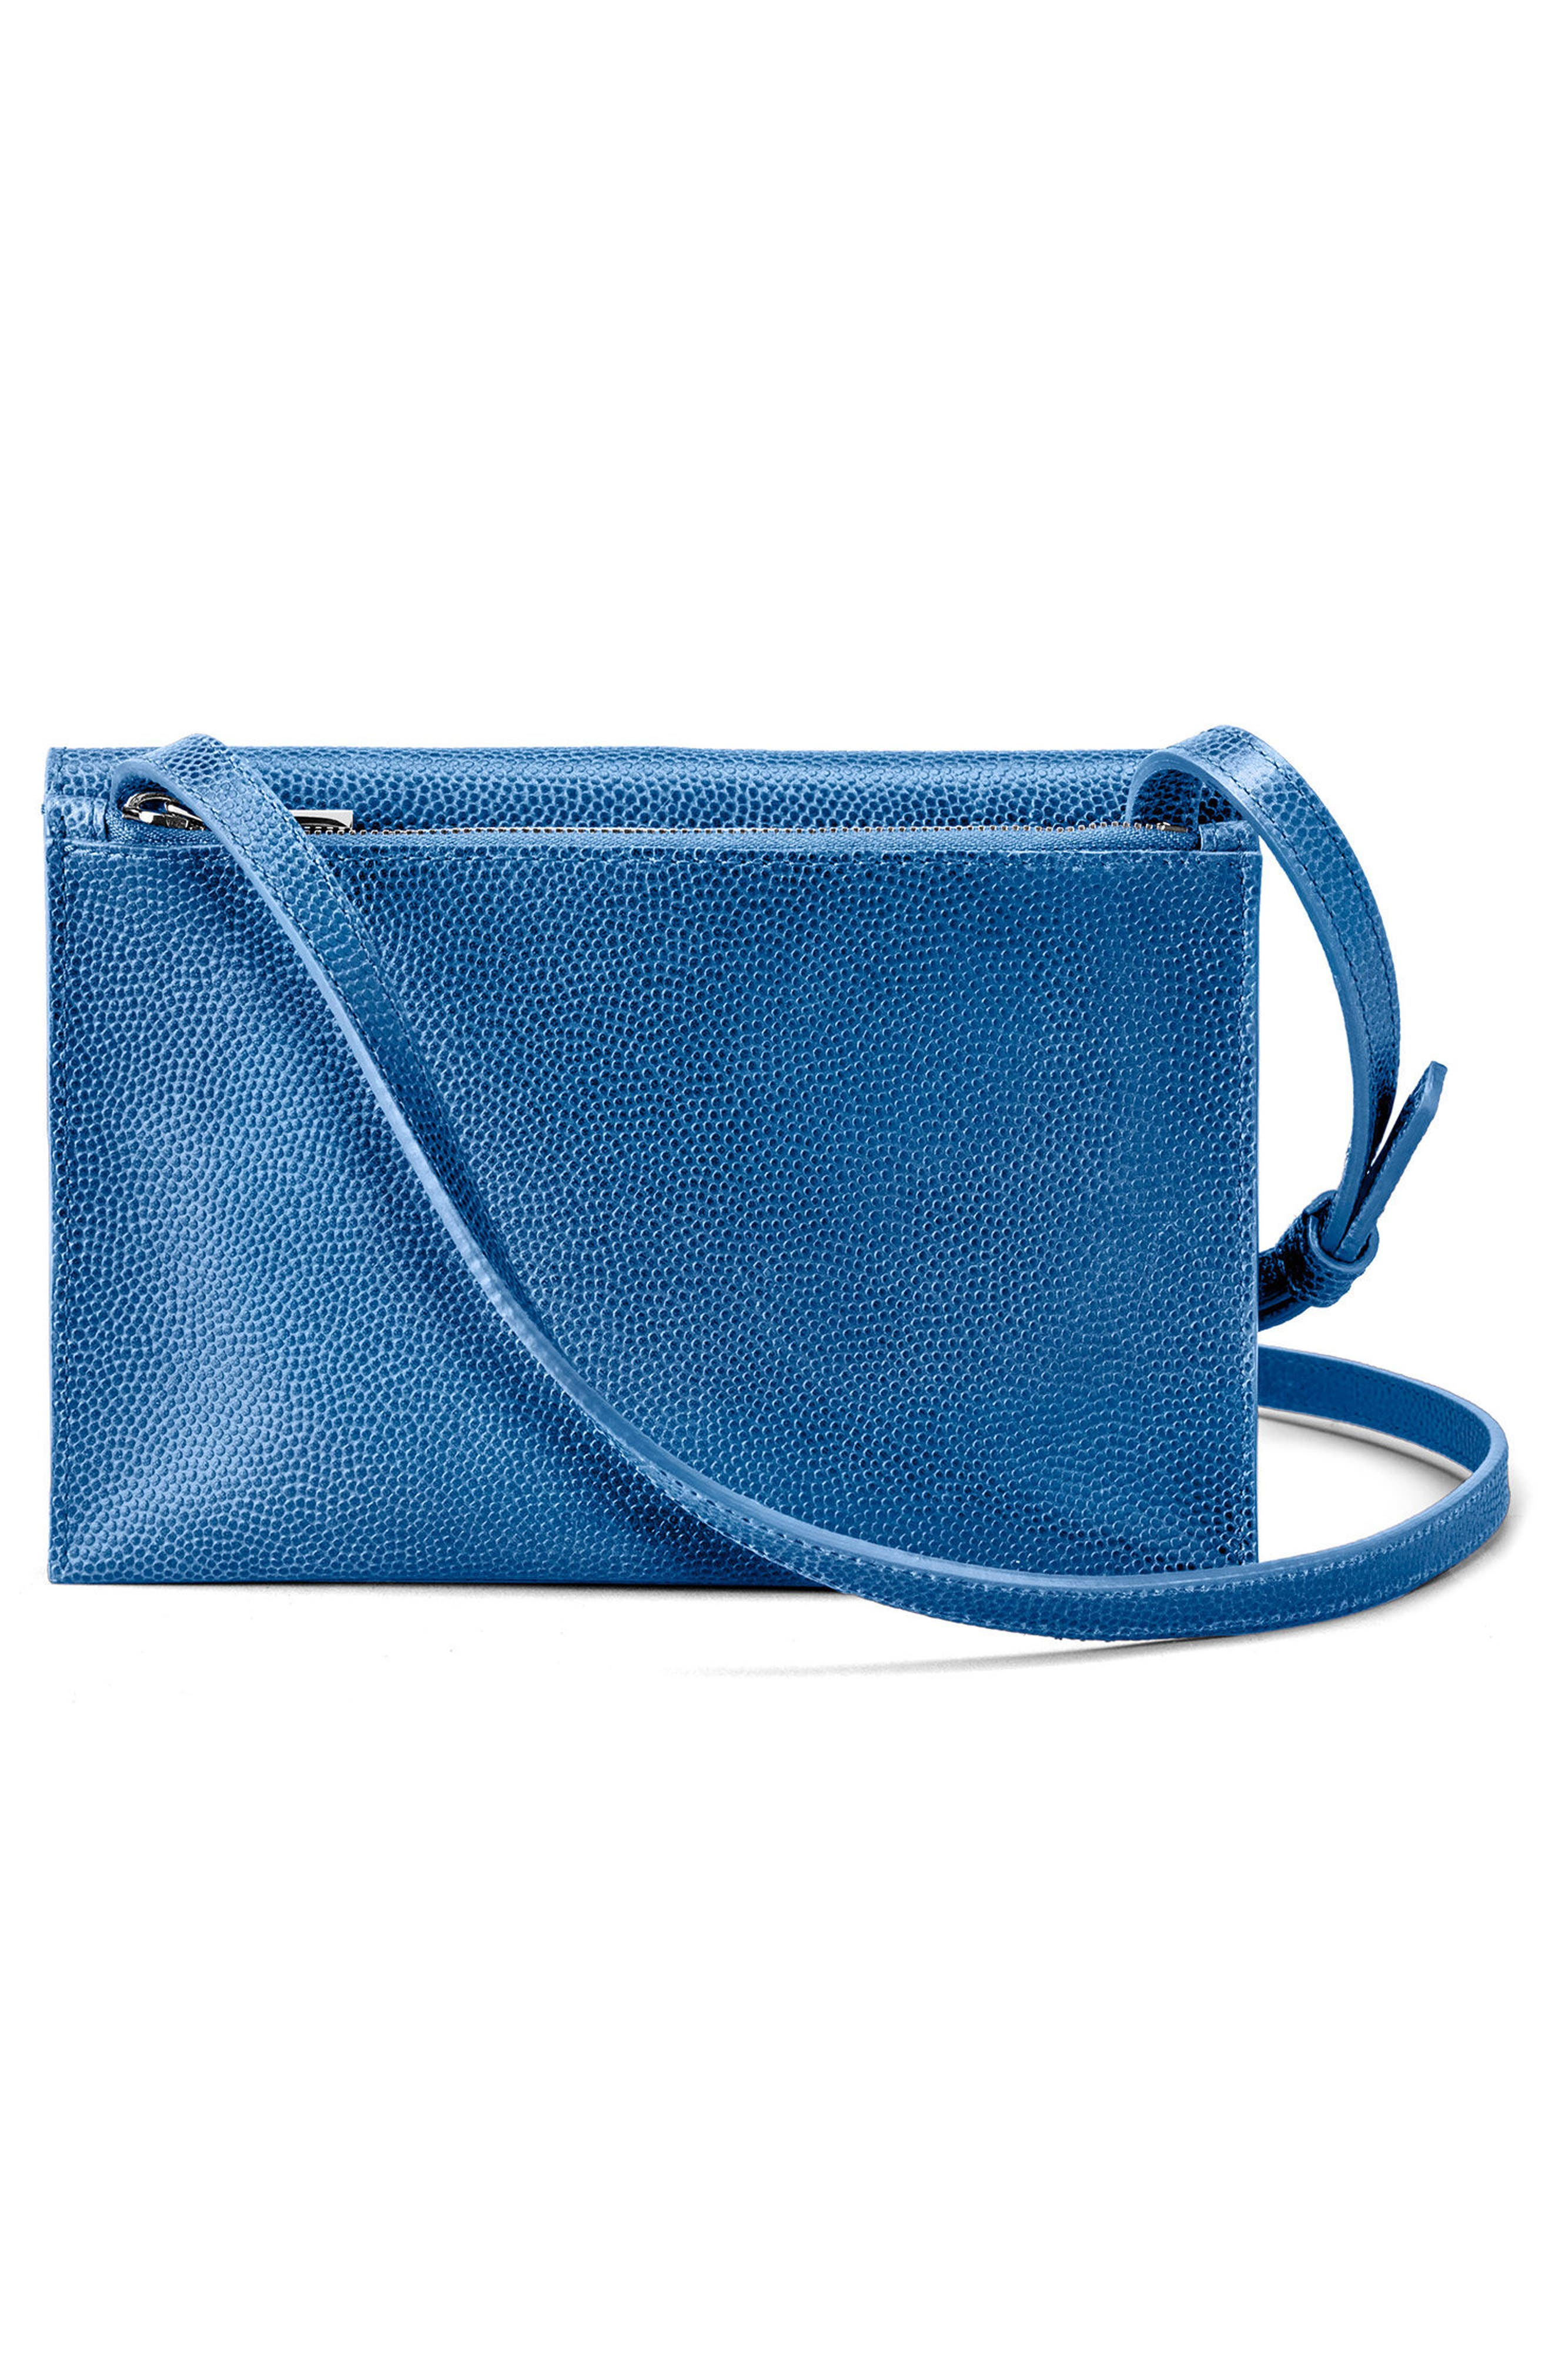 Alternate Image 2  - Shinola Leather Crossbody Bag